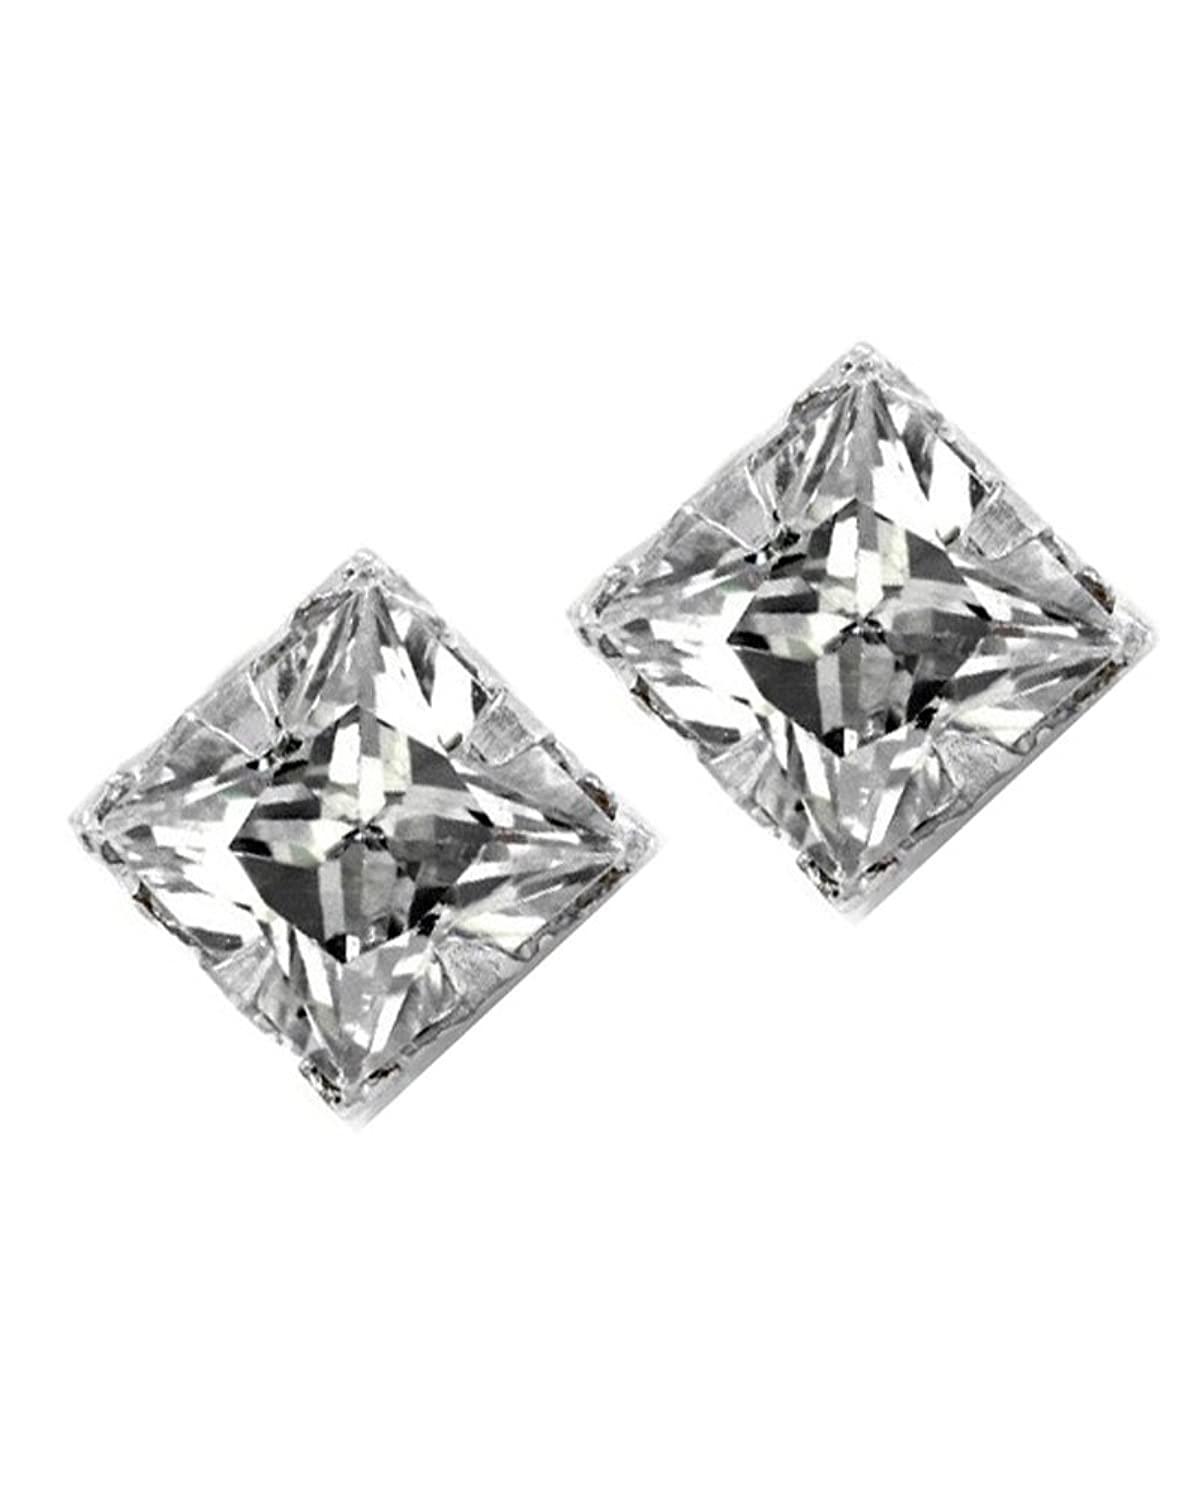 studs diamond brilliantcut brilliant cut claw square stud earrings aurora studearrings classic